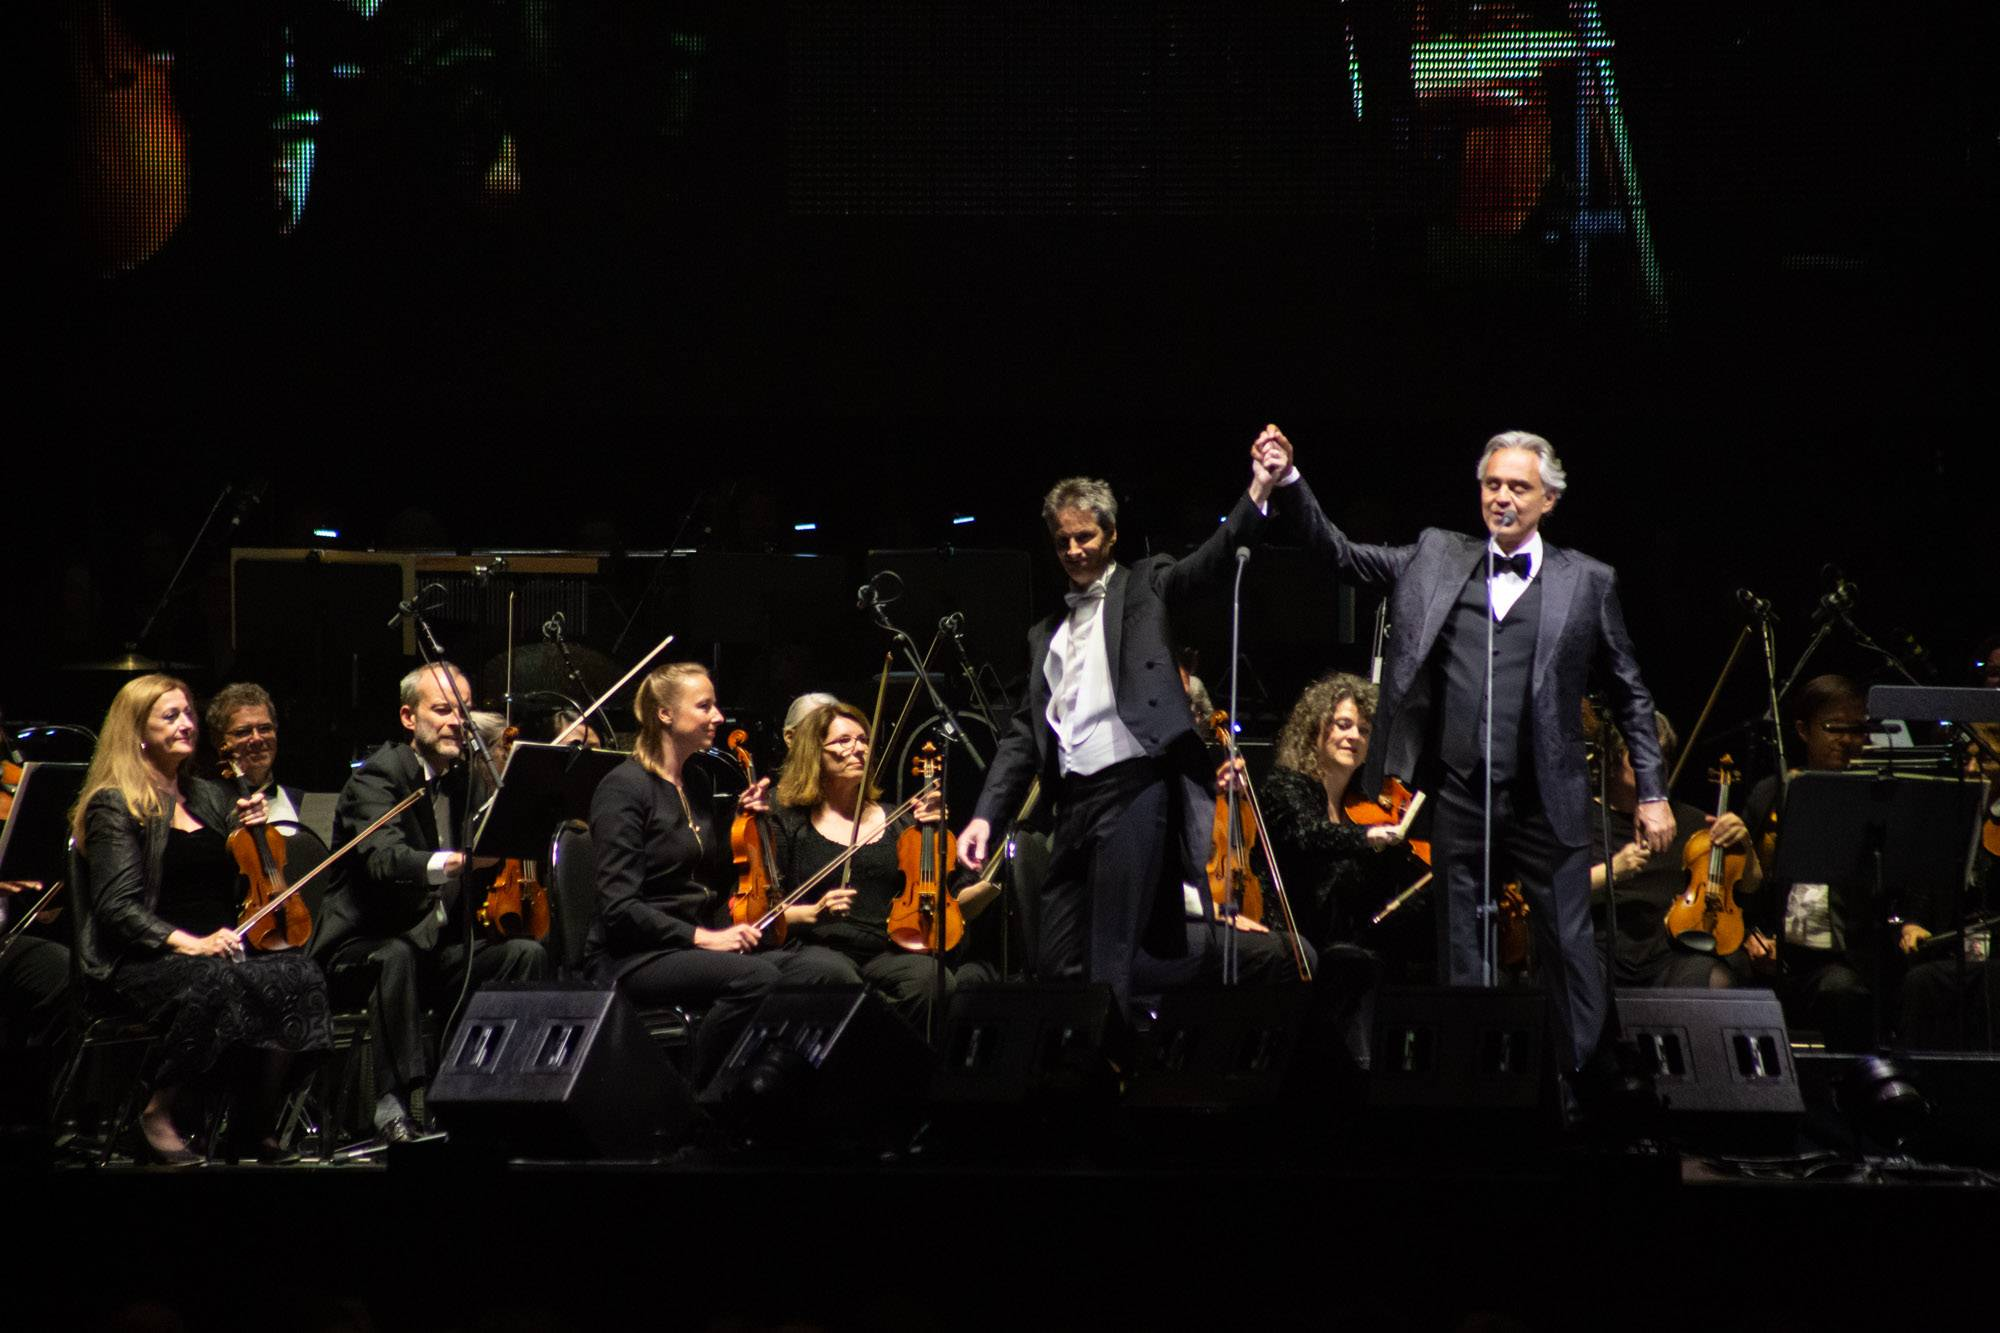 Andrea Bocelli at Rogers Arena, Vancouver, Jun 13 2019. Kirk Chantraine photo.